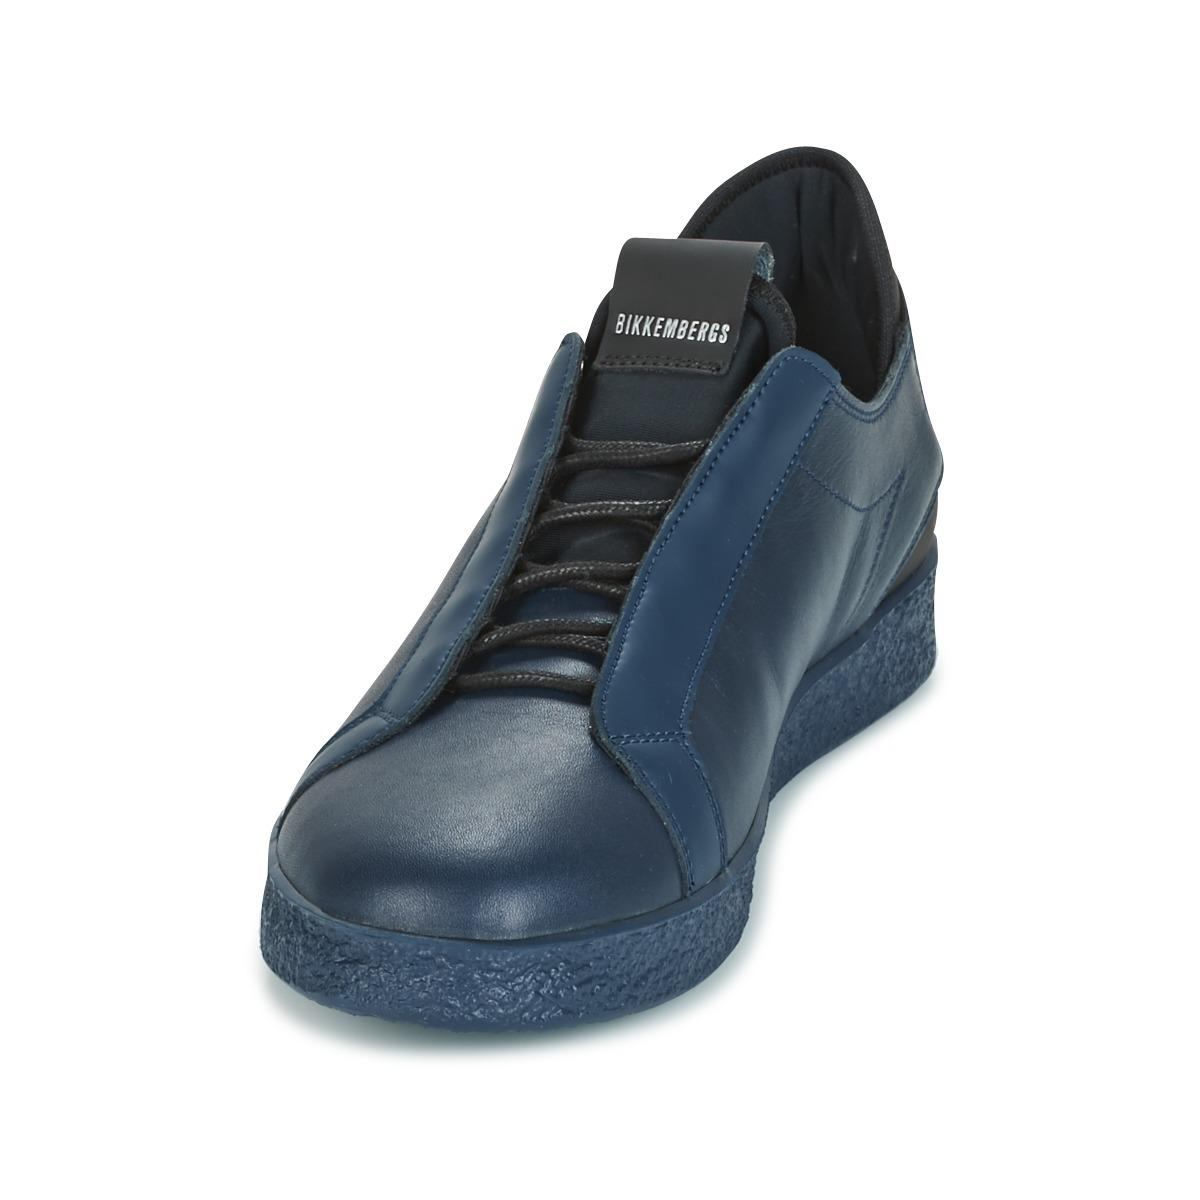 Bikkembergs Leather Best 873 Shoes (trainers) in Blue for Men - Save 17%